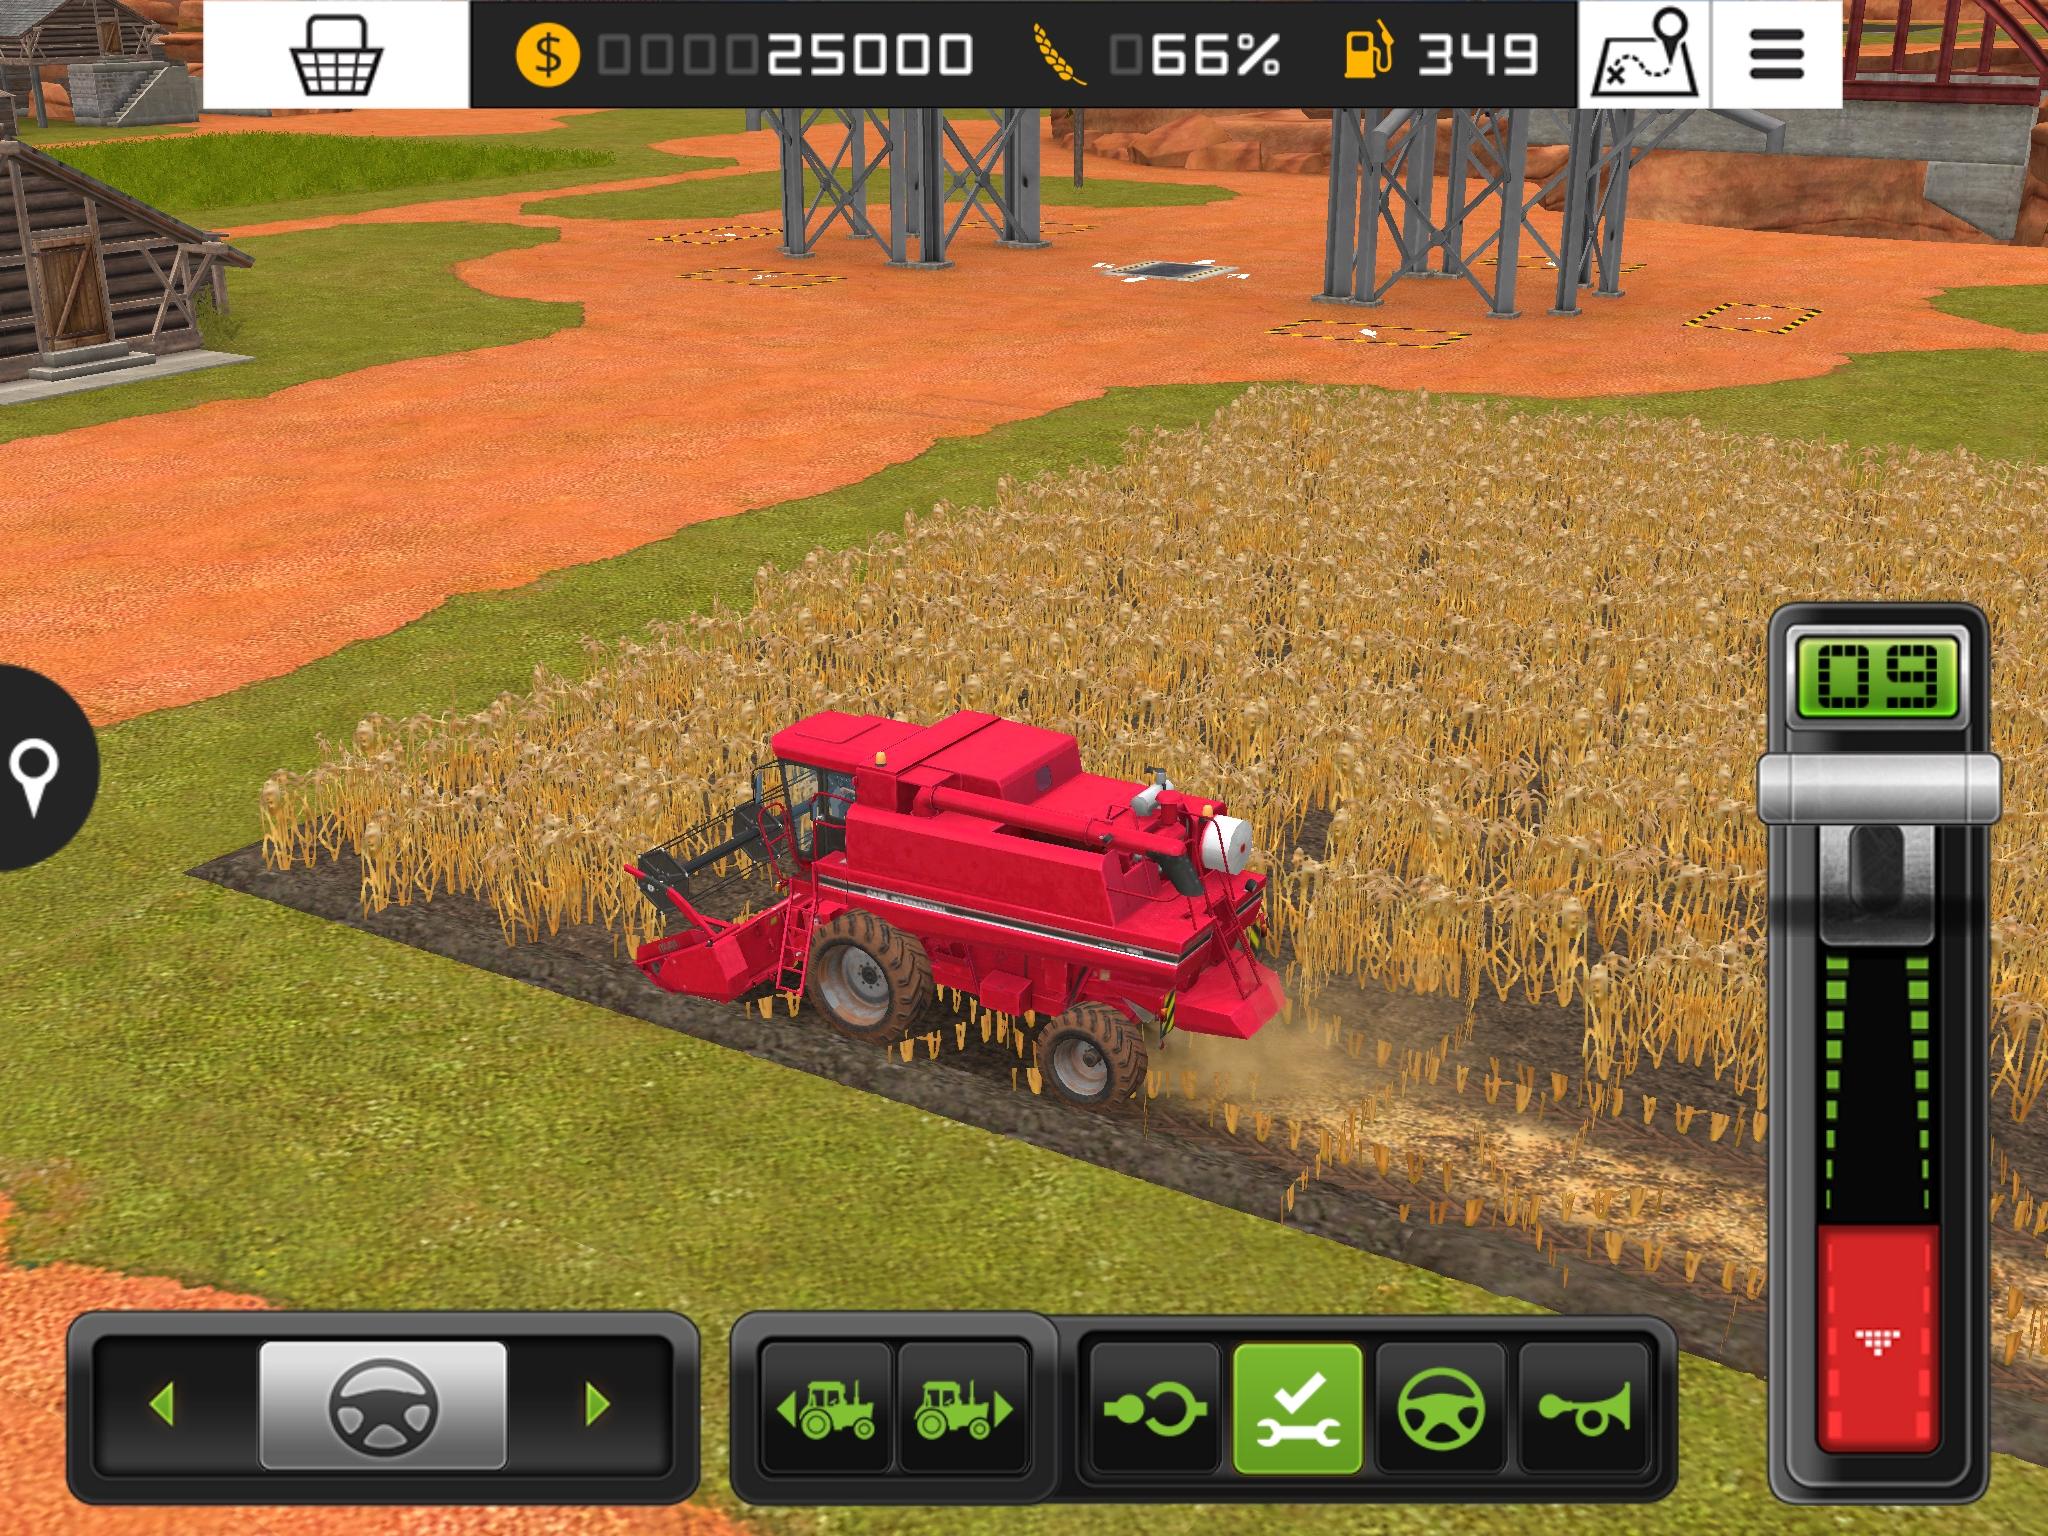 Farming Simulator 18 review - A well-thought out mobile port of a hardcore simulator